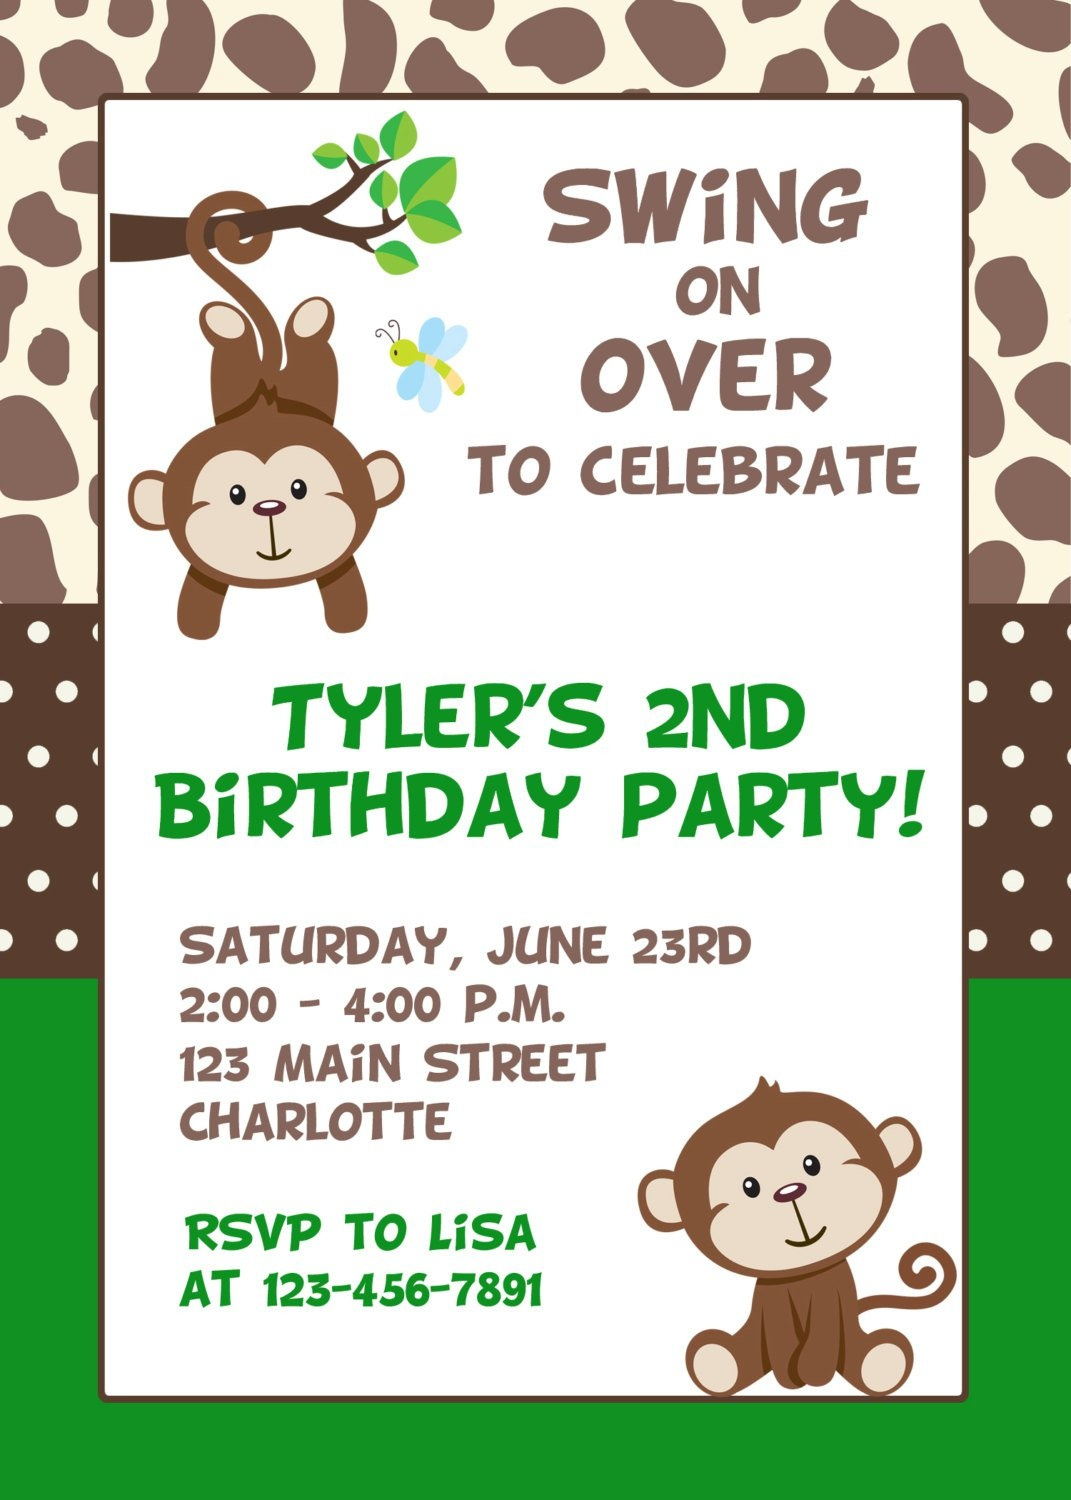 Monkey Birthday Invitations Free Printable - Free Printable Monkey Birthday Party Invitations